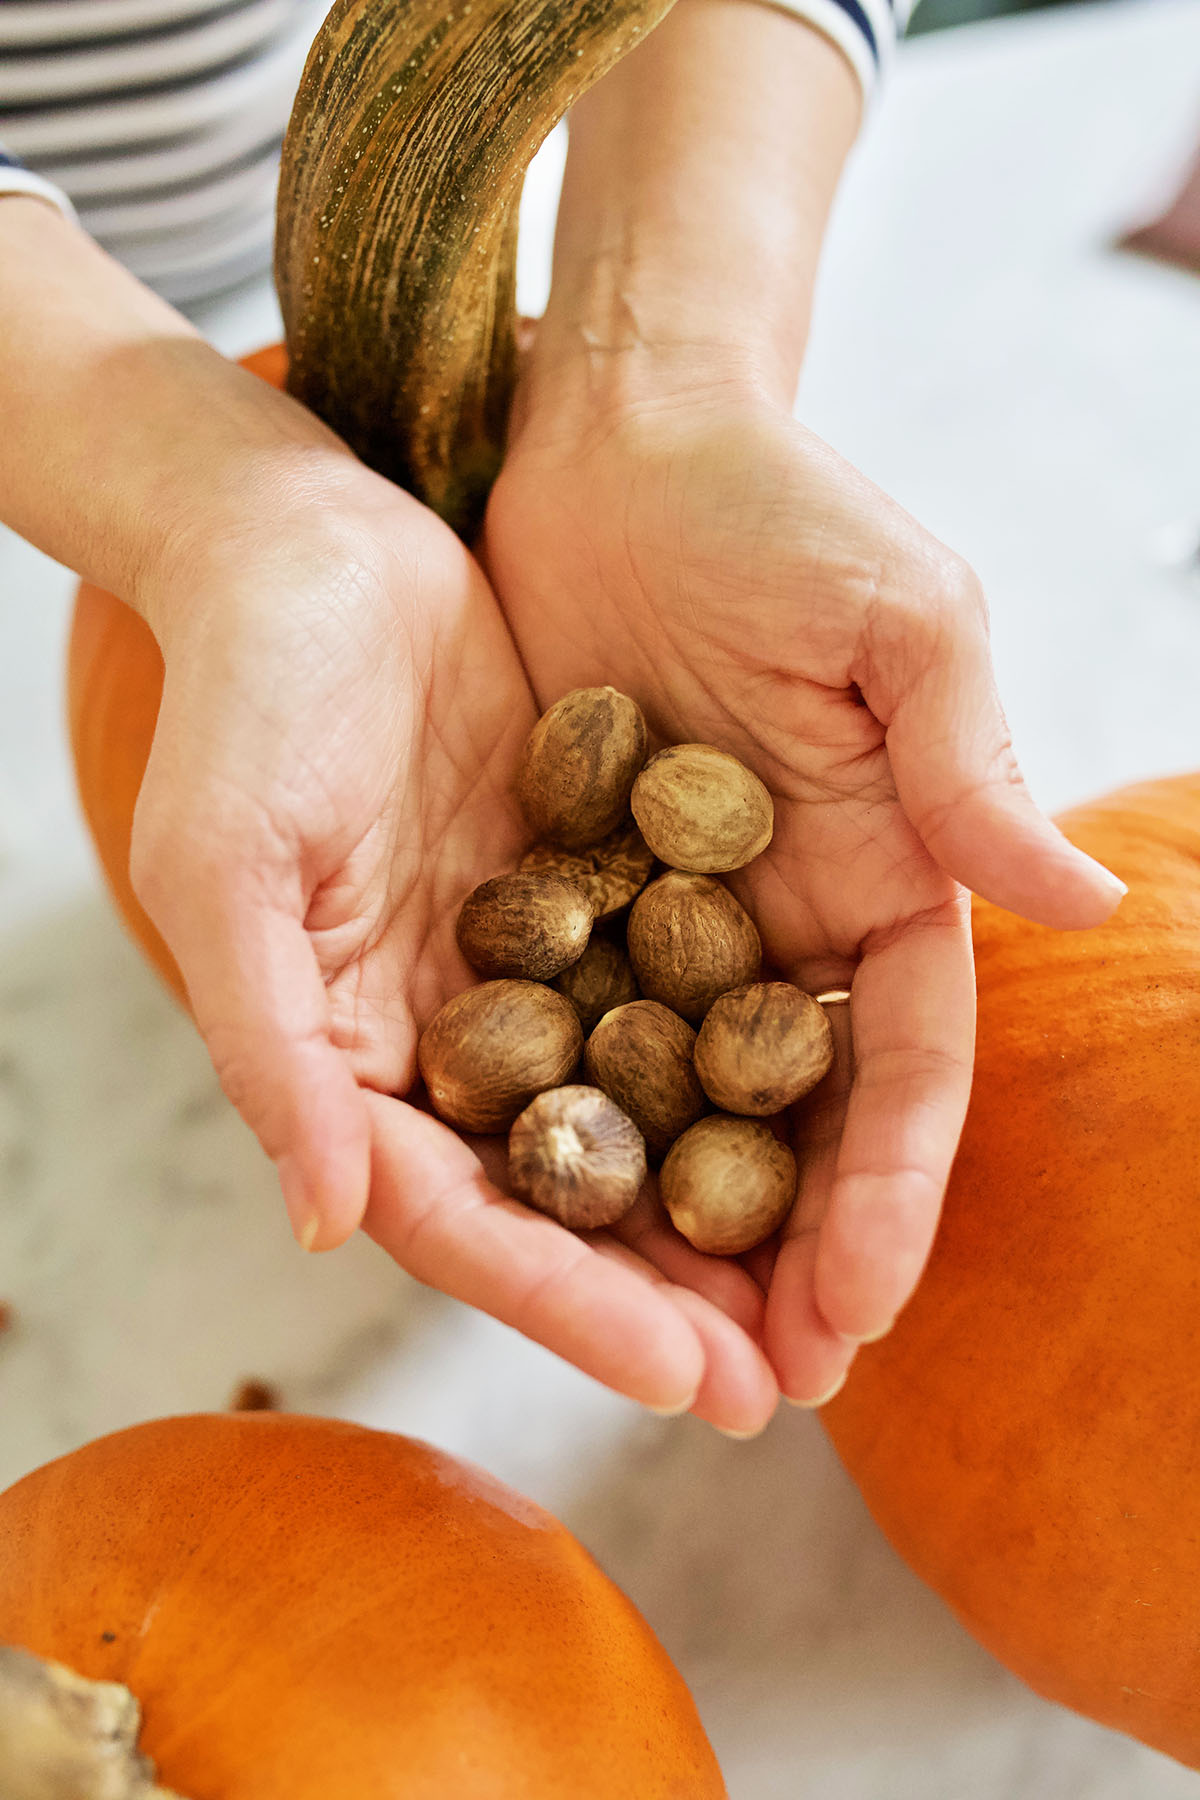 Pumpkin Spice Wellness Benefits You Should Know About | Herbal Academy | Fall equals pumpkin spice season! Learn about pumpkin spice wellness benefits and how to bring that true pumpkin spice flavor into your everyday life.